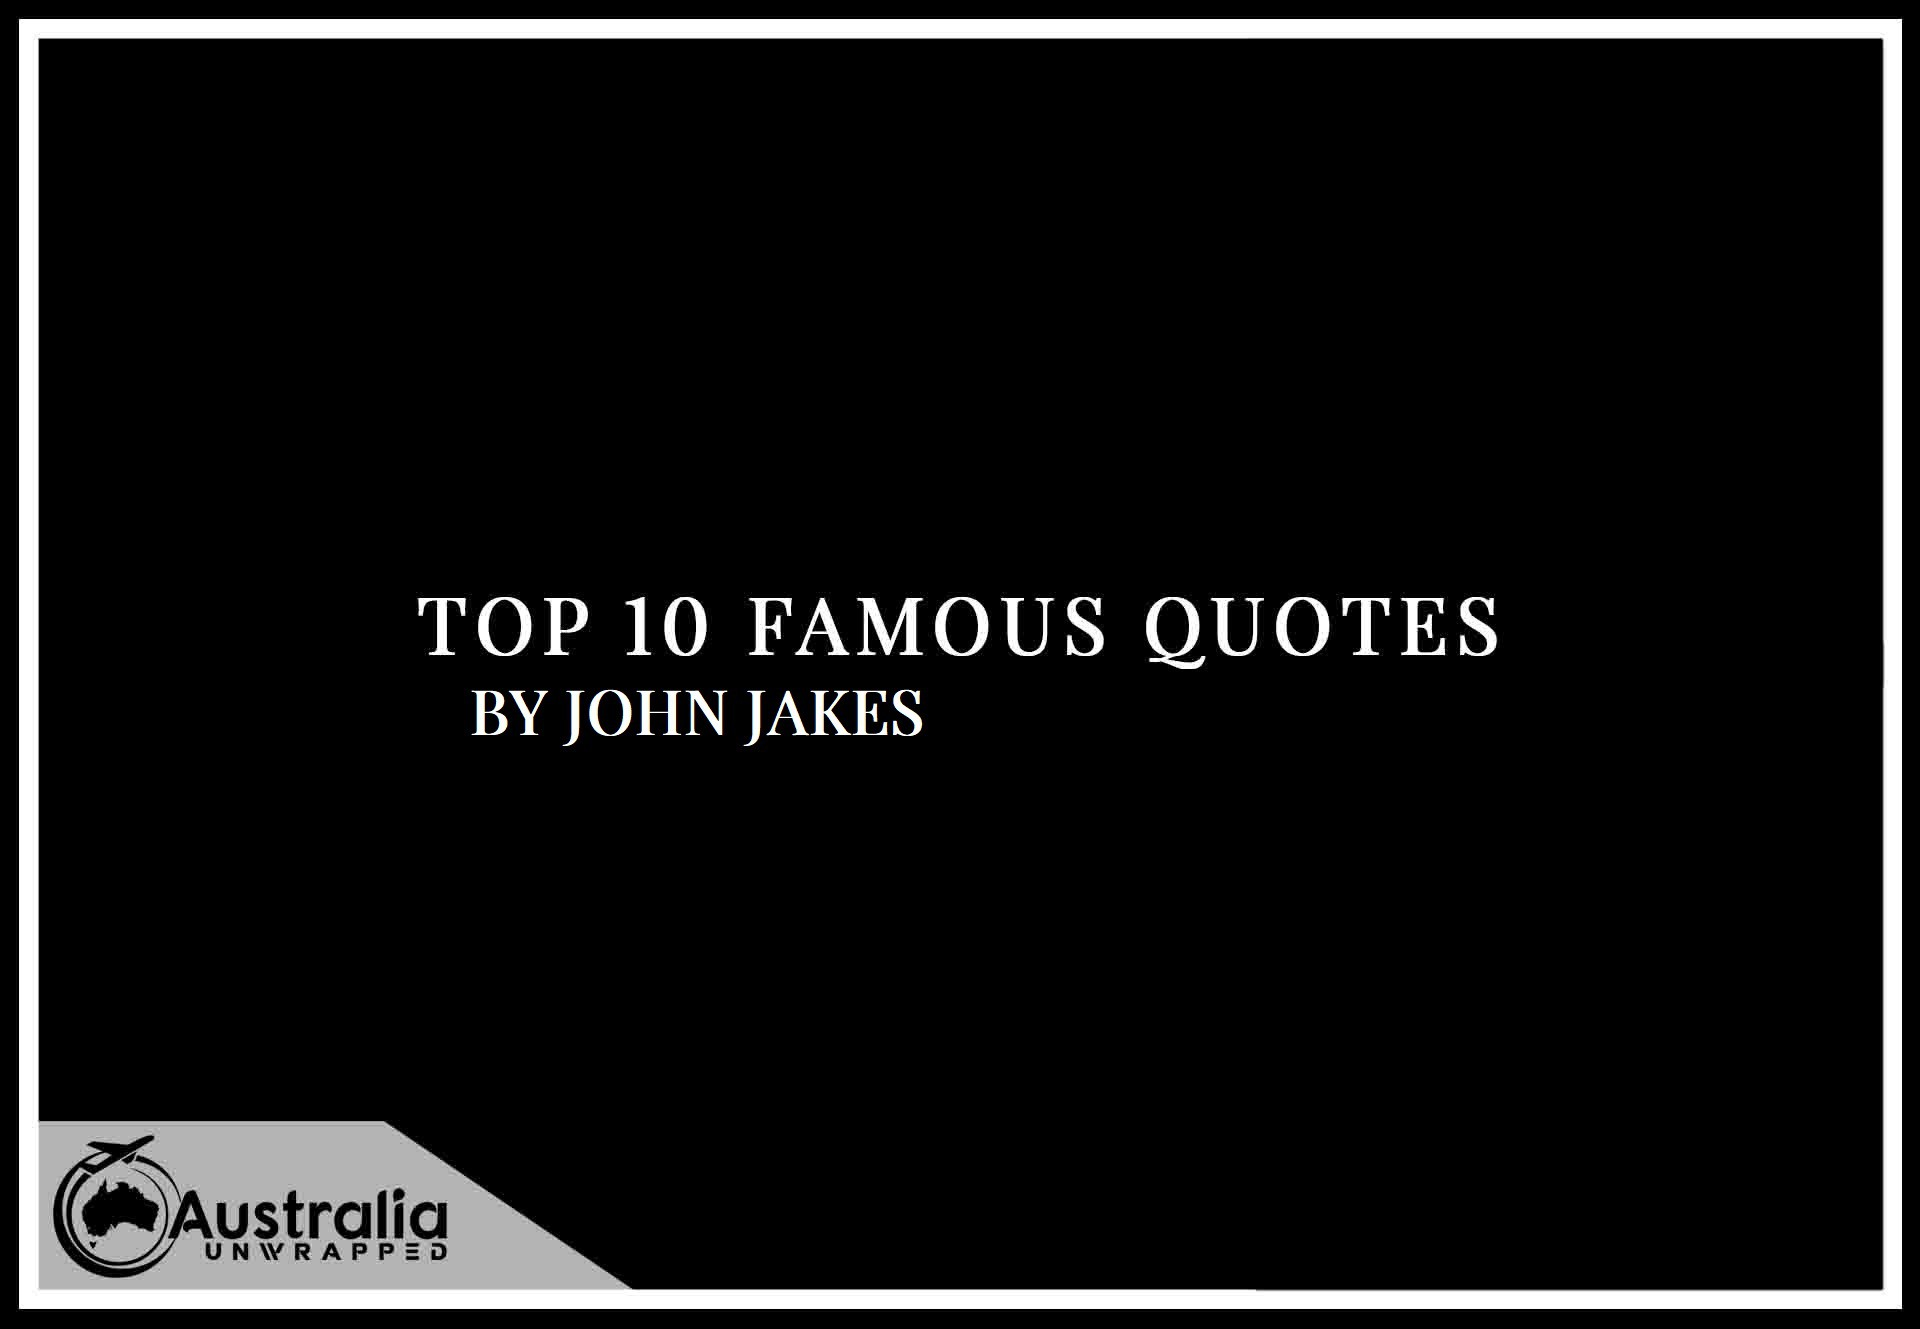 Top 10 Famous Quotes by Author John Jakes